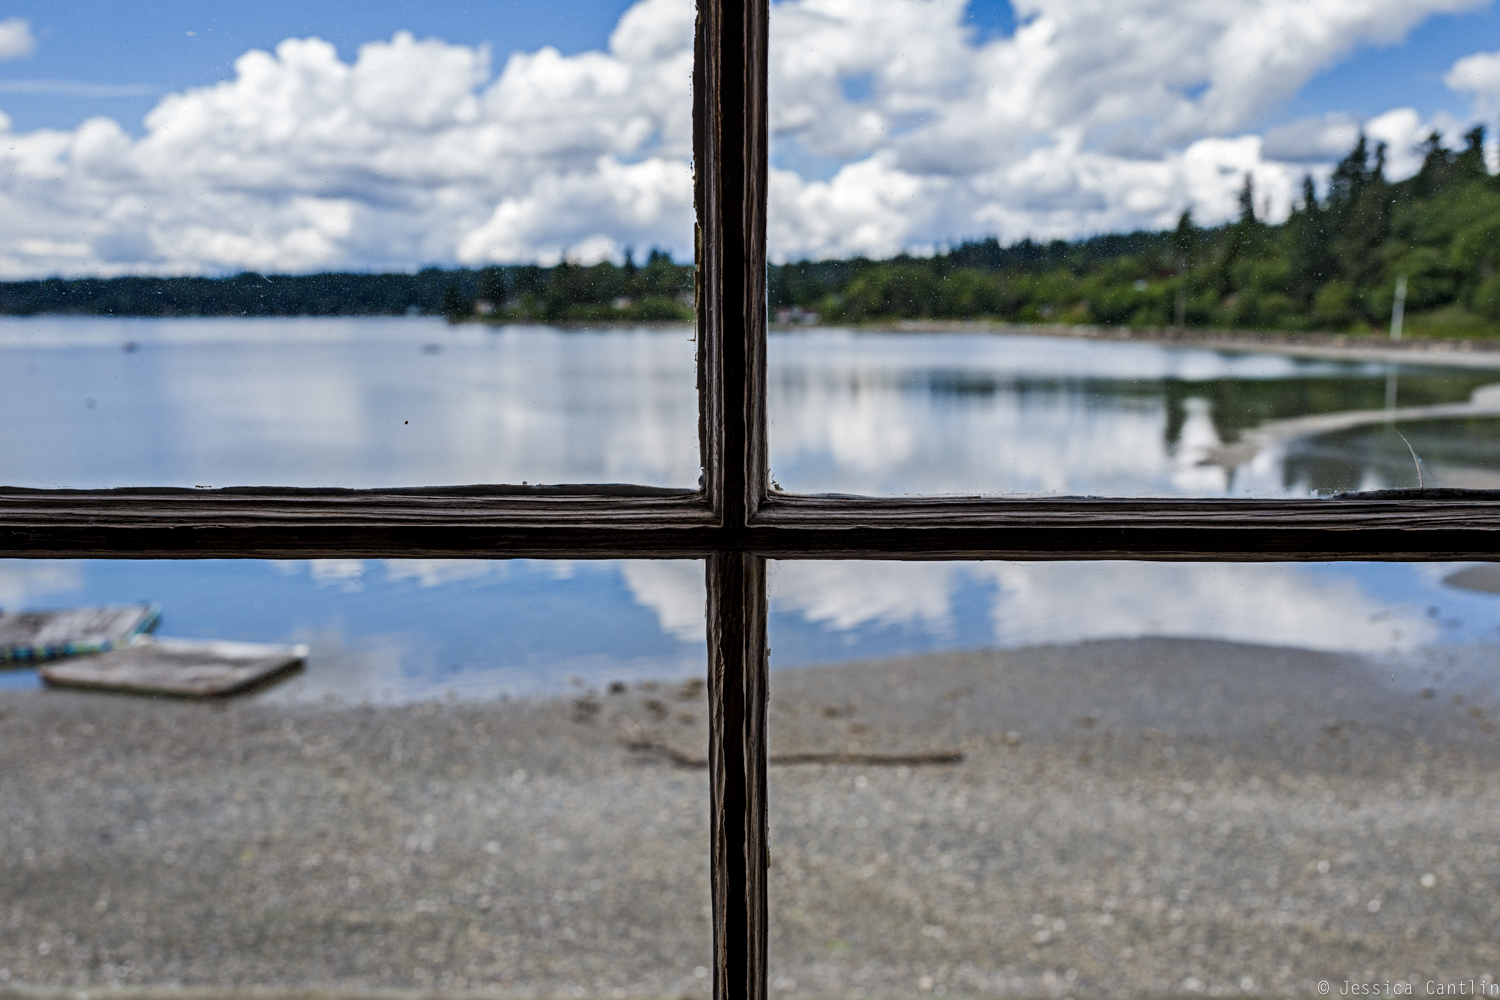 Looking out on Quartermaster Harbor.